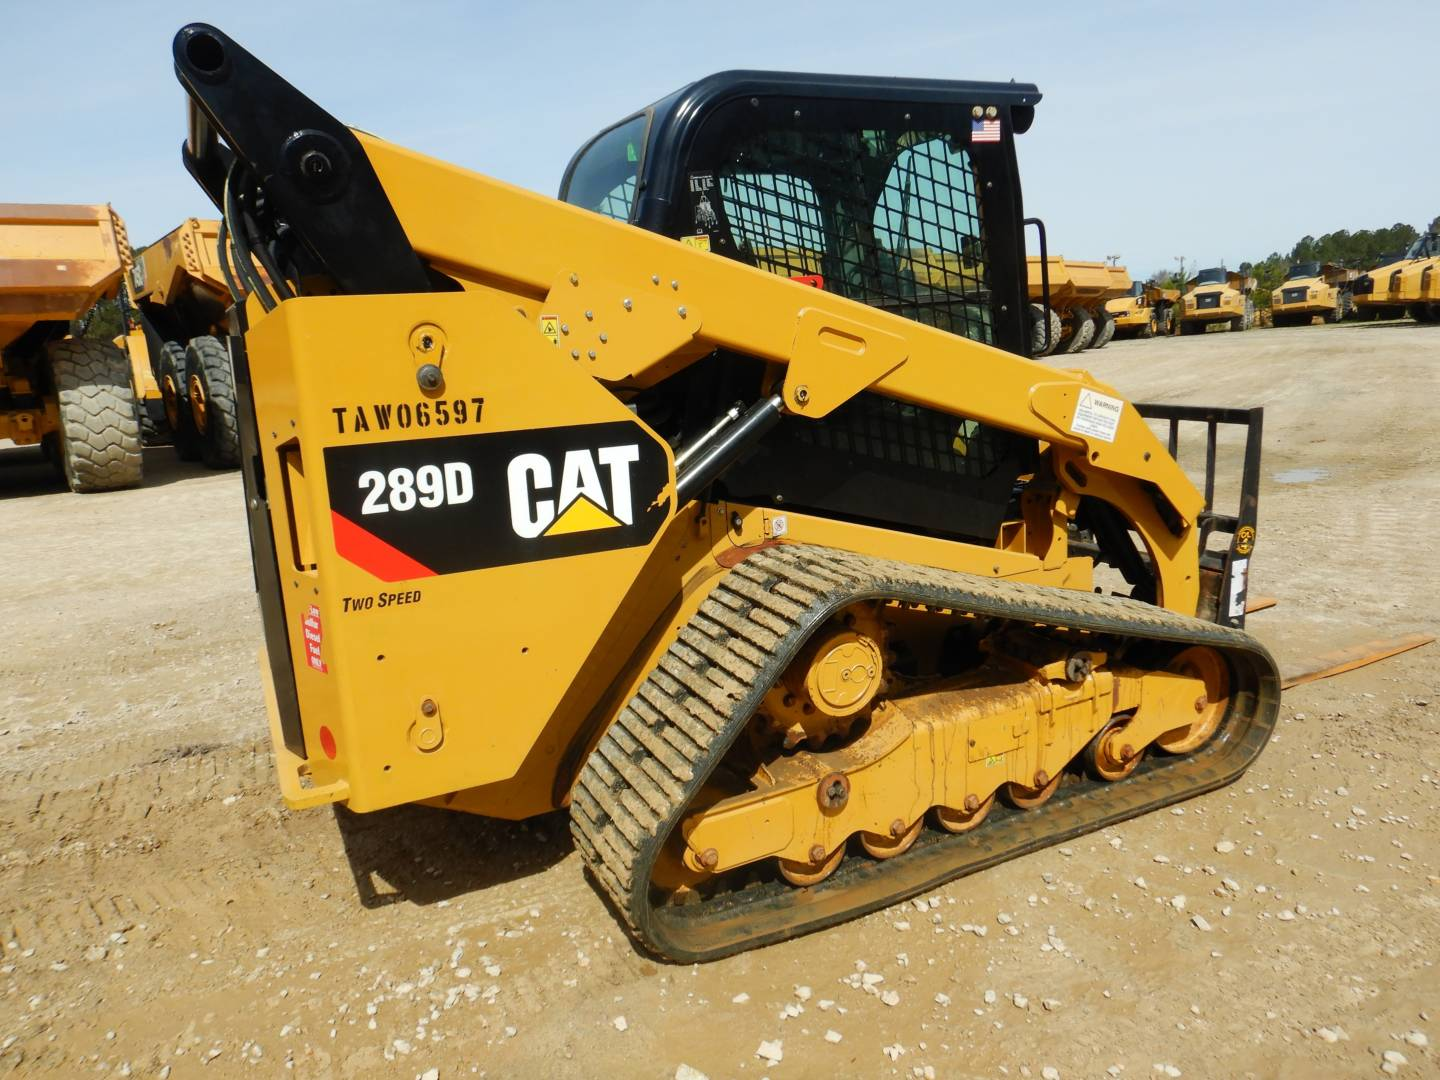 Used Skid Steer Loaders for Sale in NJ, PA, DE and Staten Island